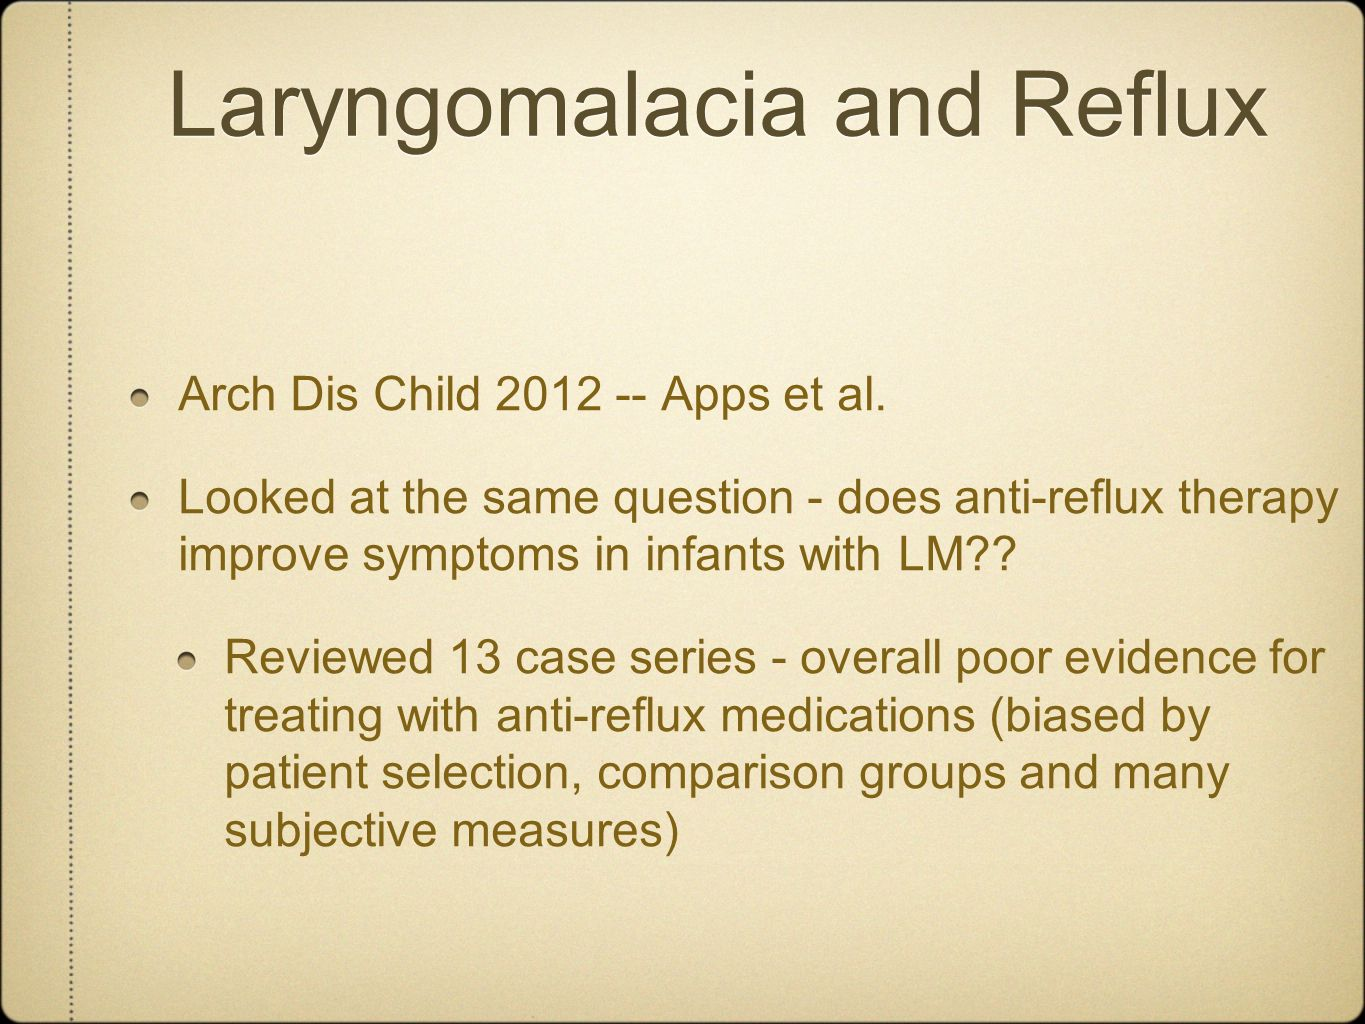 Laryngomalacia and Reflux